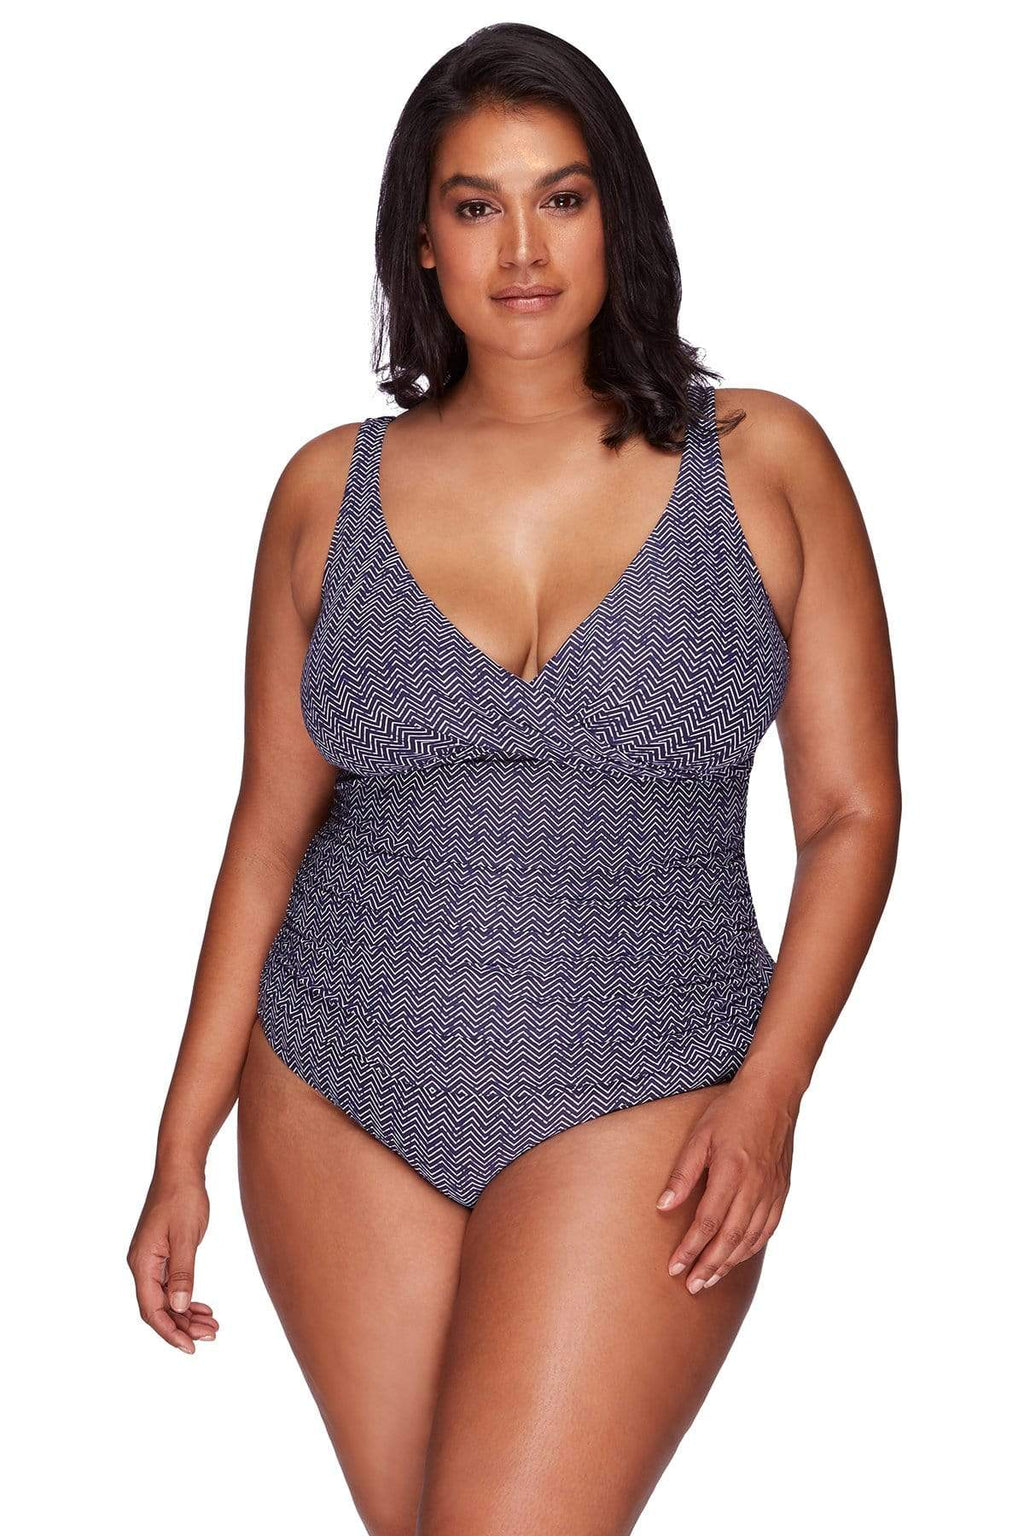 Artesands One Piece Navy Zig Zag Delacroix One Piece AT1720ZZ-14 Navy Plus Size Curvy